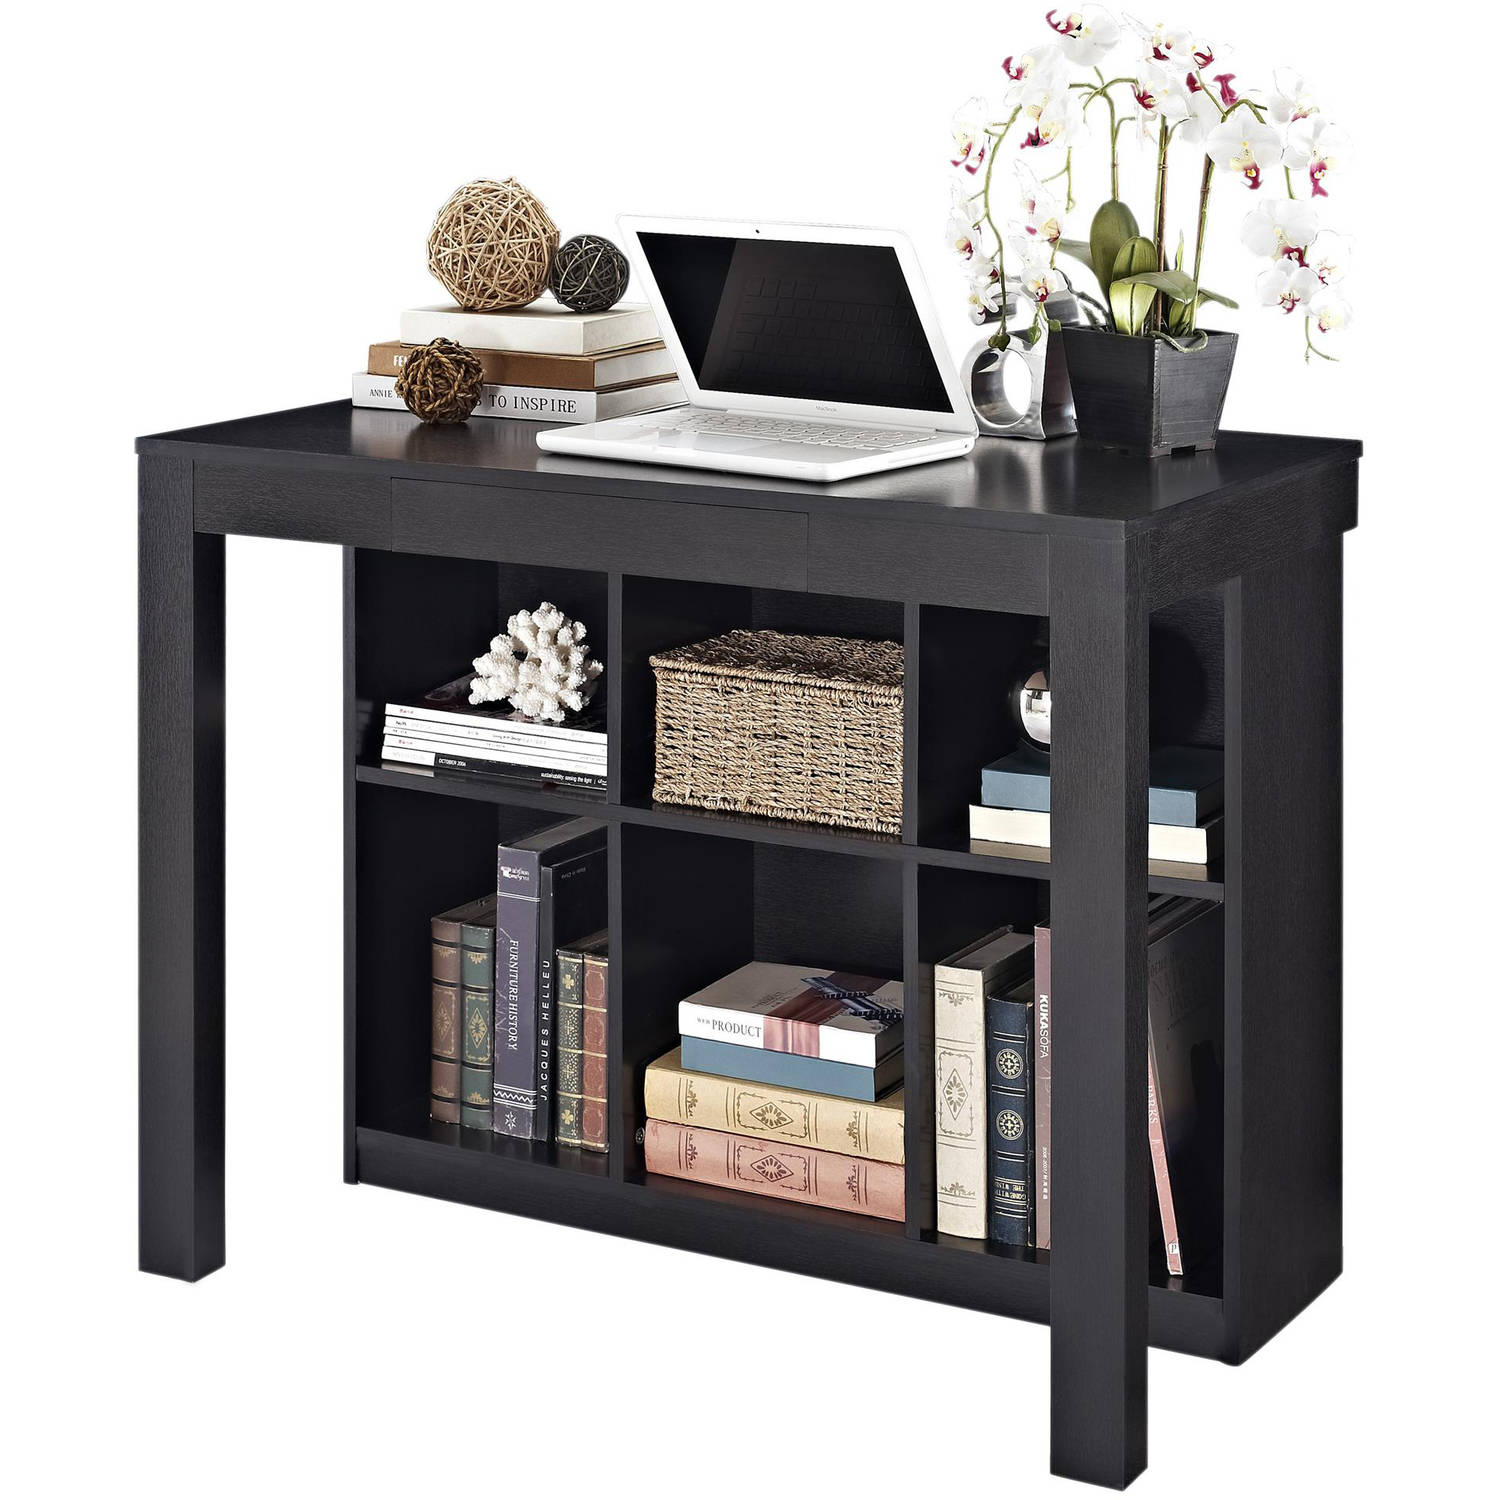 Altra Furniture Parsons Style Desk with Drawer and Bookcase, Black Oak